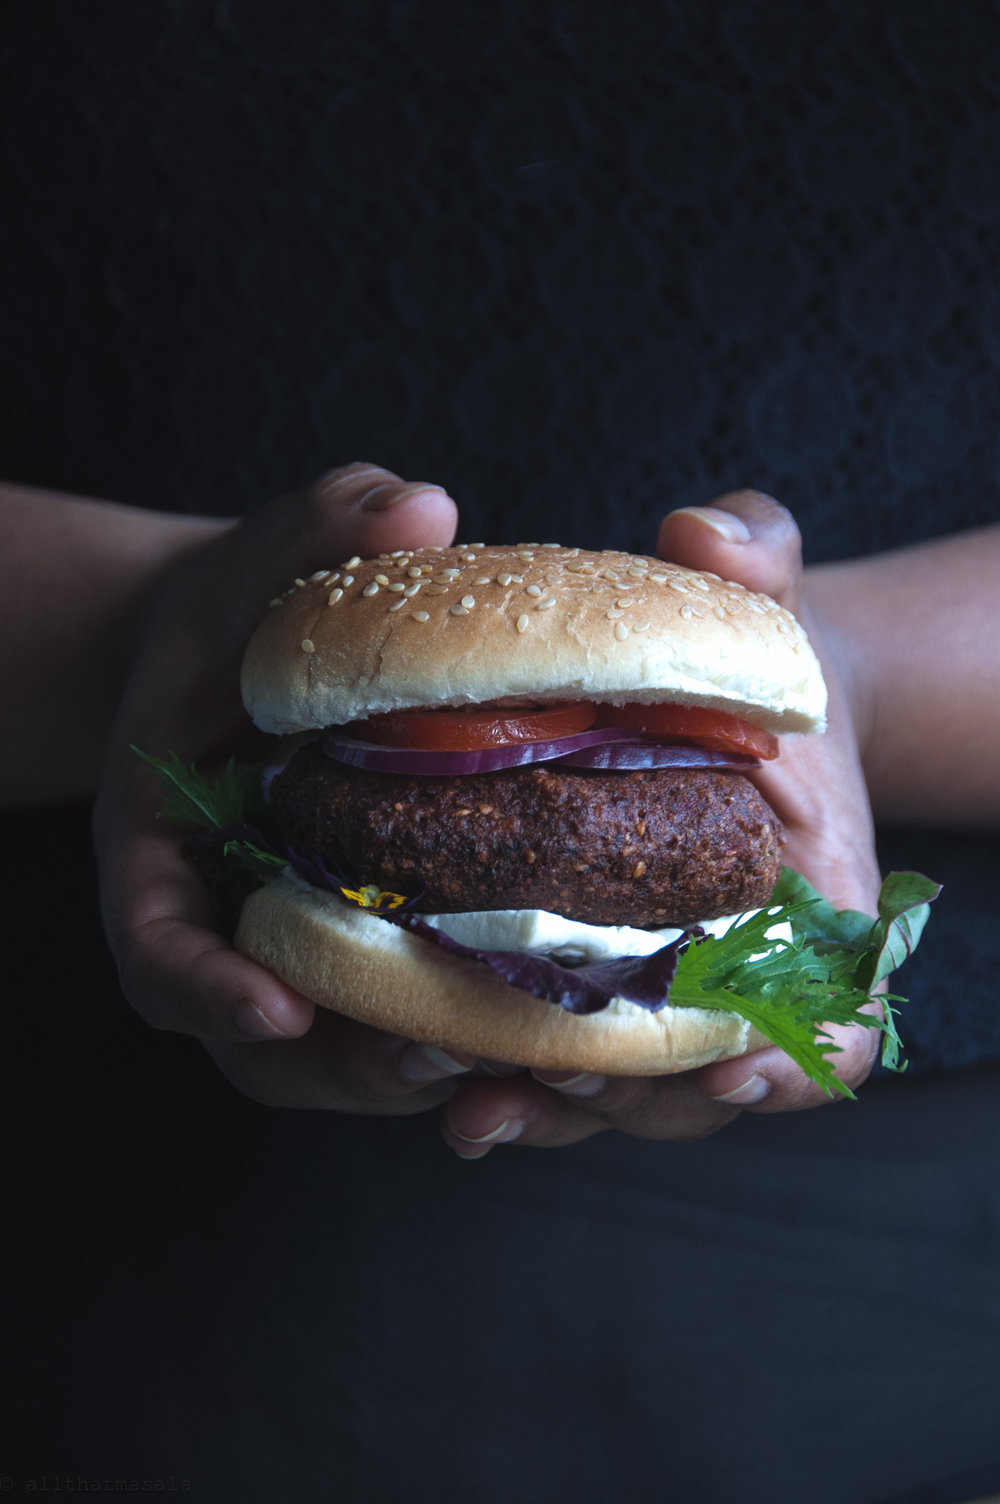 Thai mushroom vegan burger, how can we ever say no to this one?!